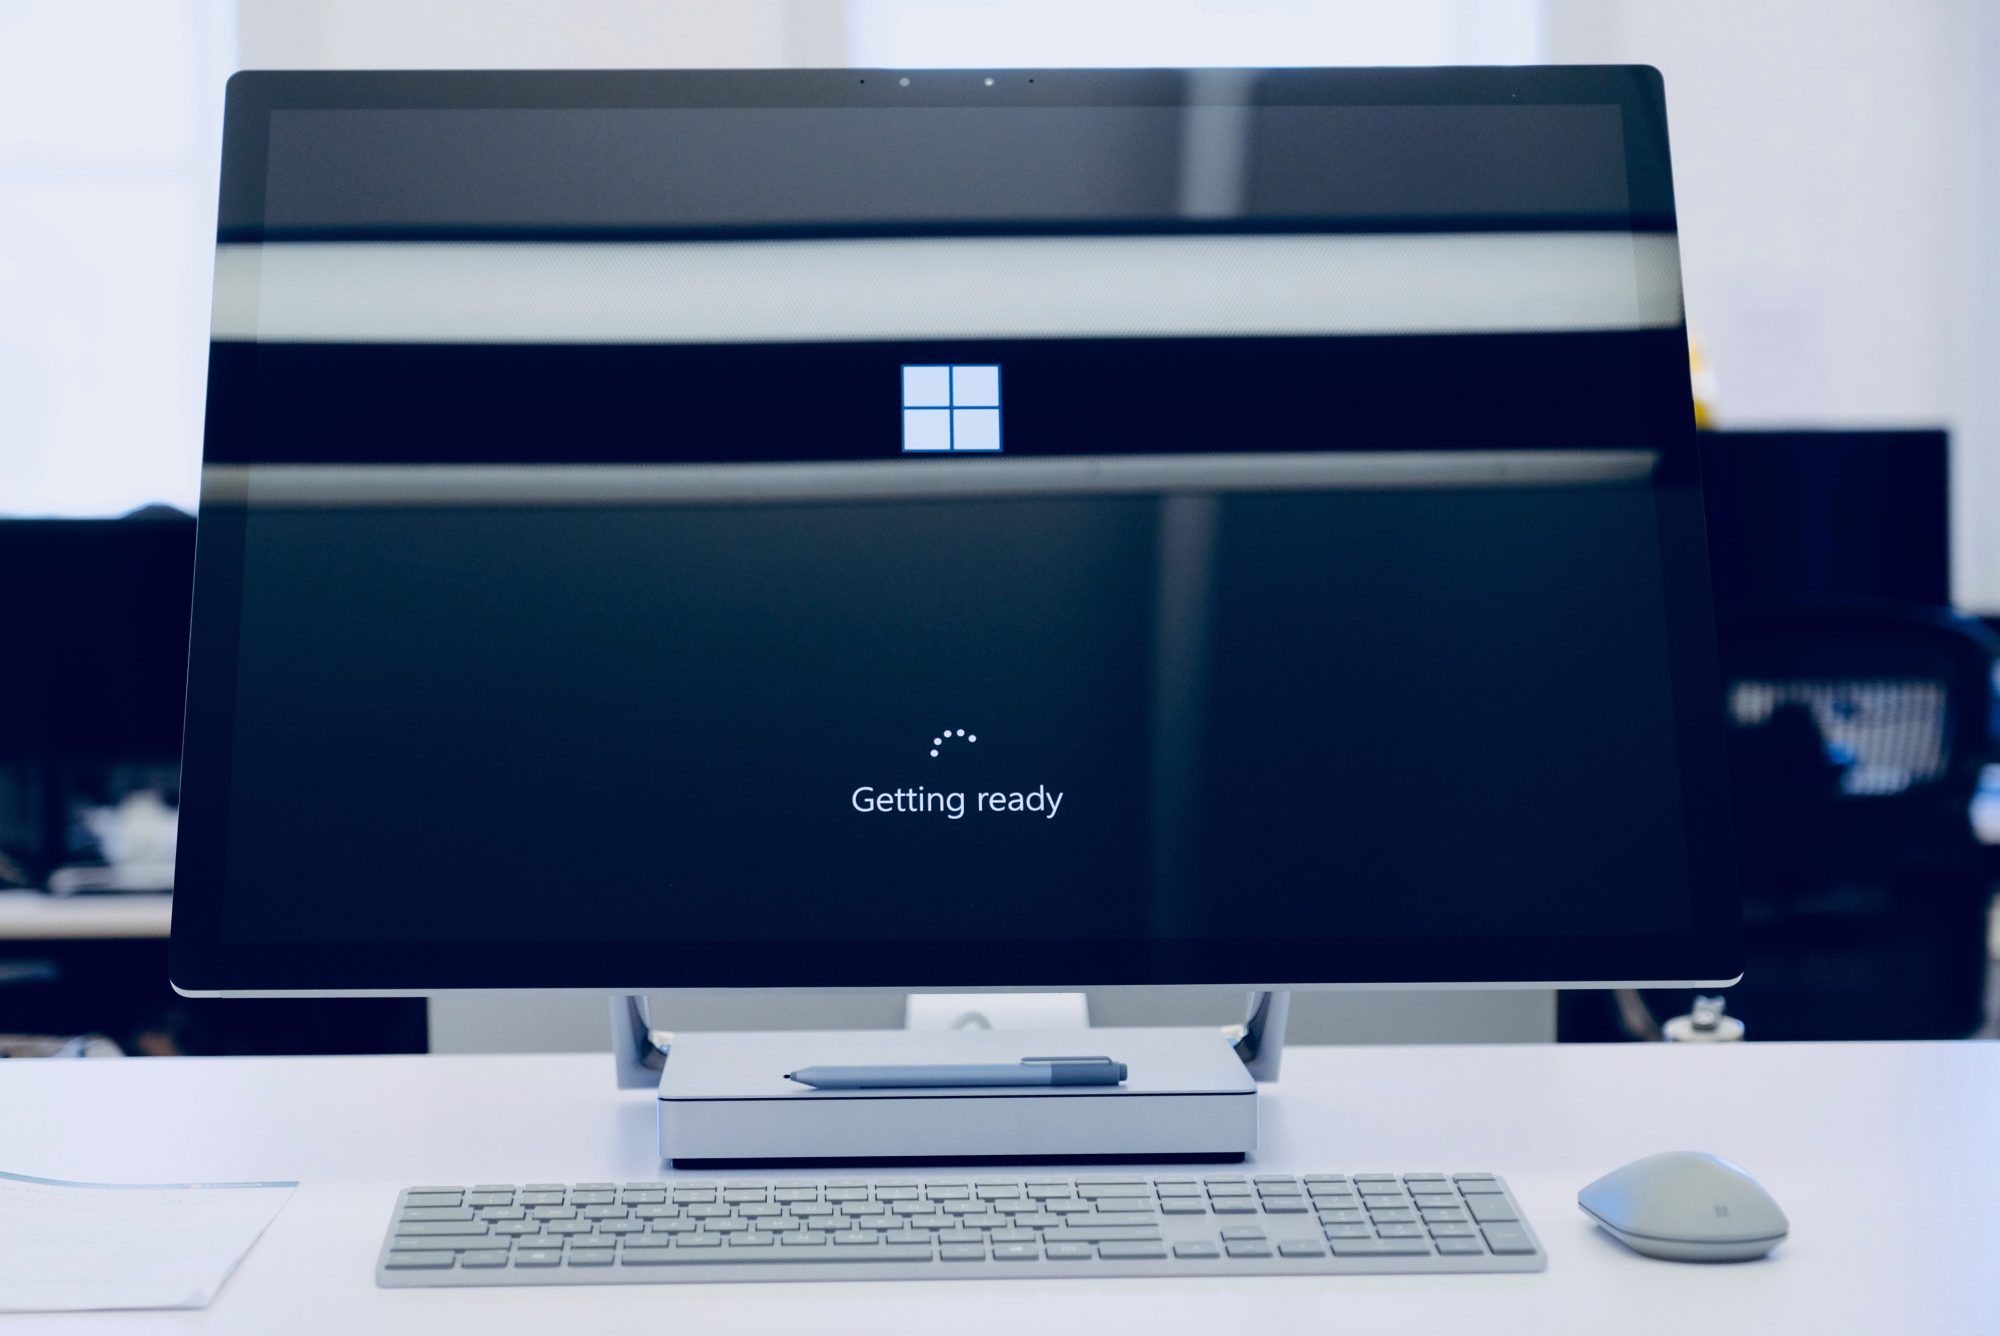 Microsoft Windows loading screen on a large monitor